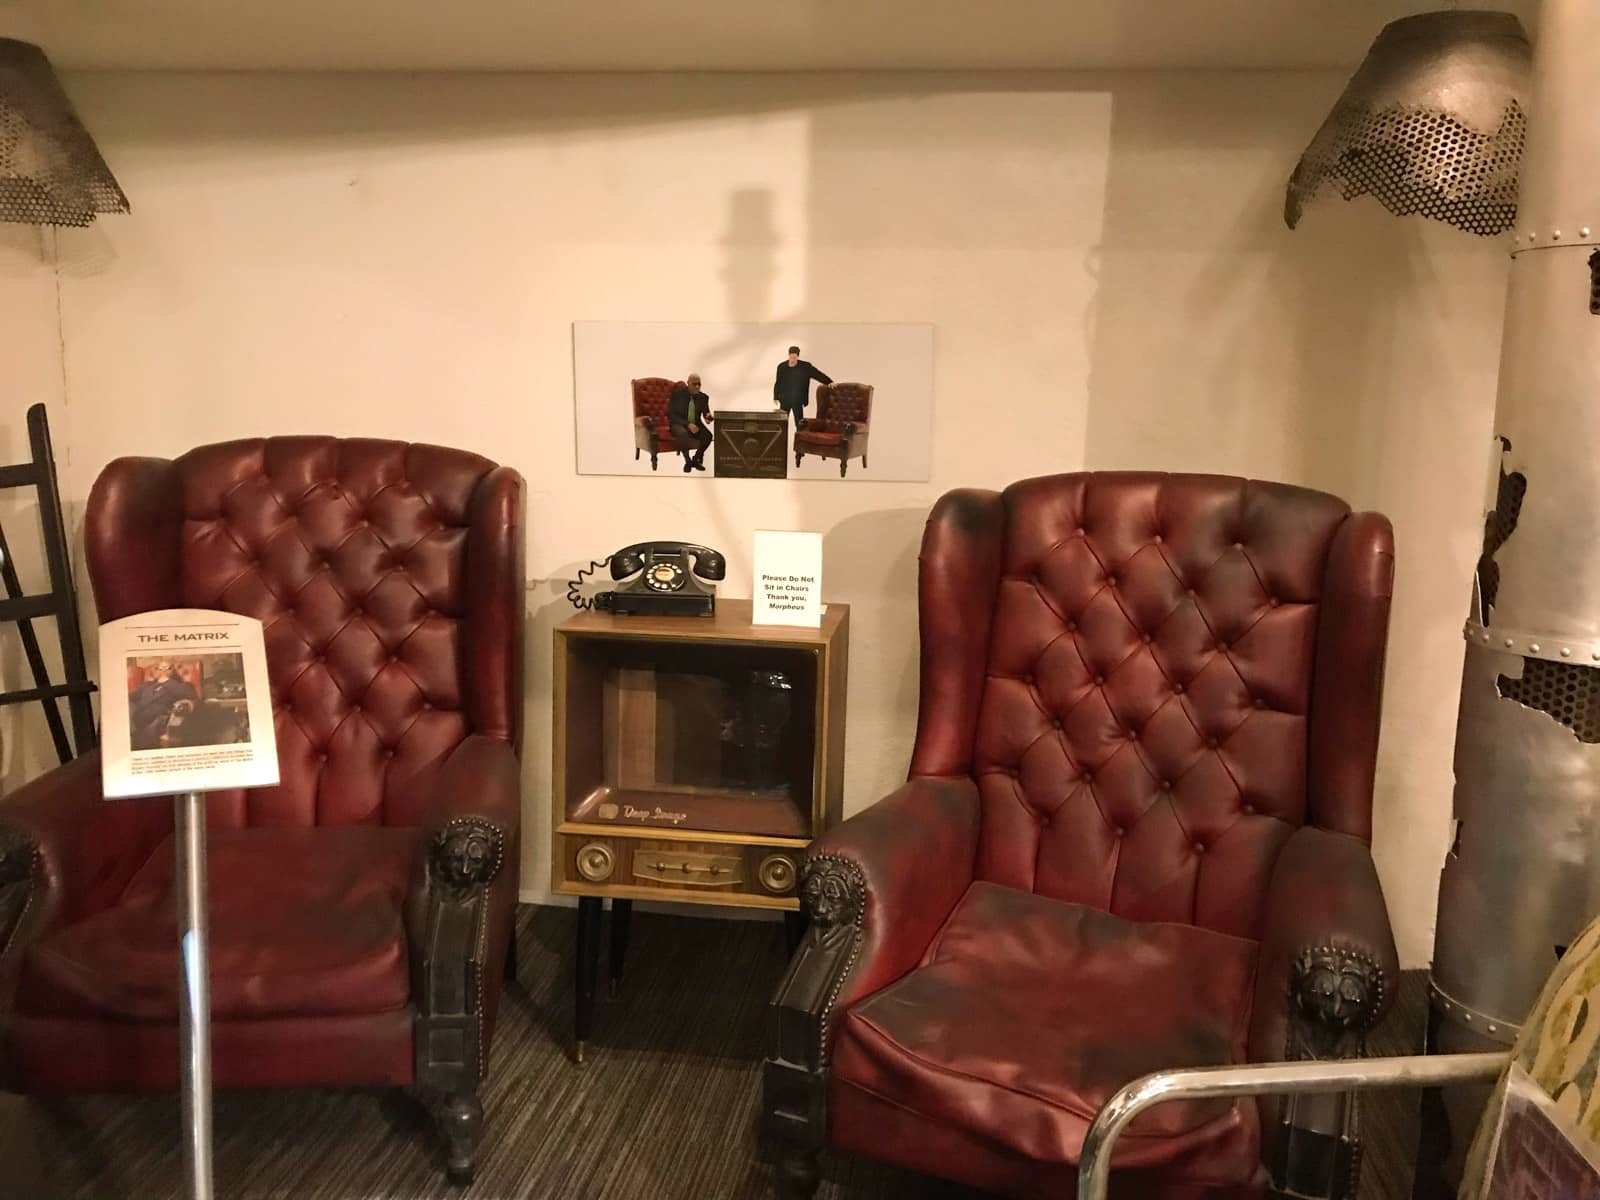 Two dark red leather chairs shown on display signage to be famous for their use the film The Matrix